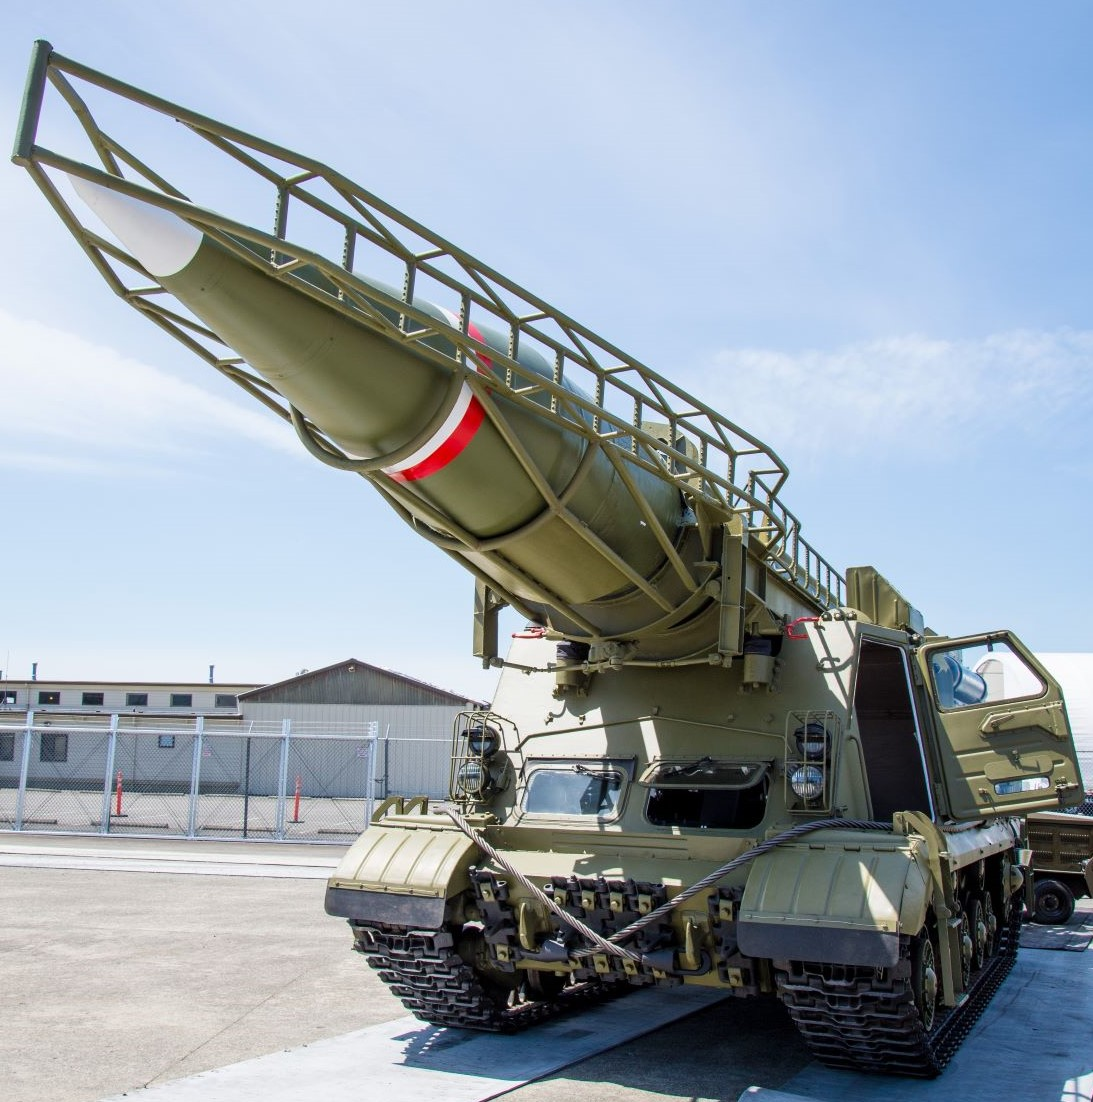 Russia Is Beefing Up Its Nuclear Arsenal. Here's What the U.S. Needs to Do